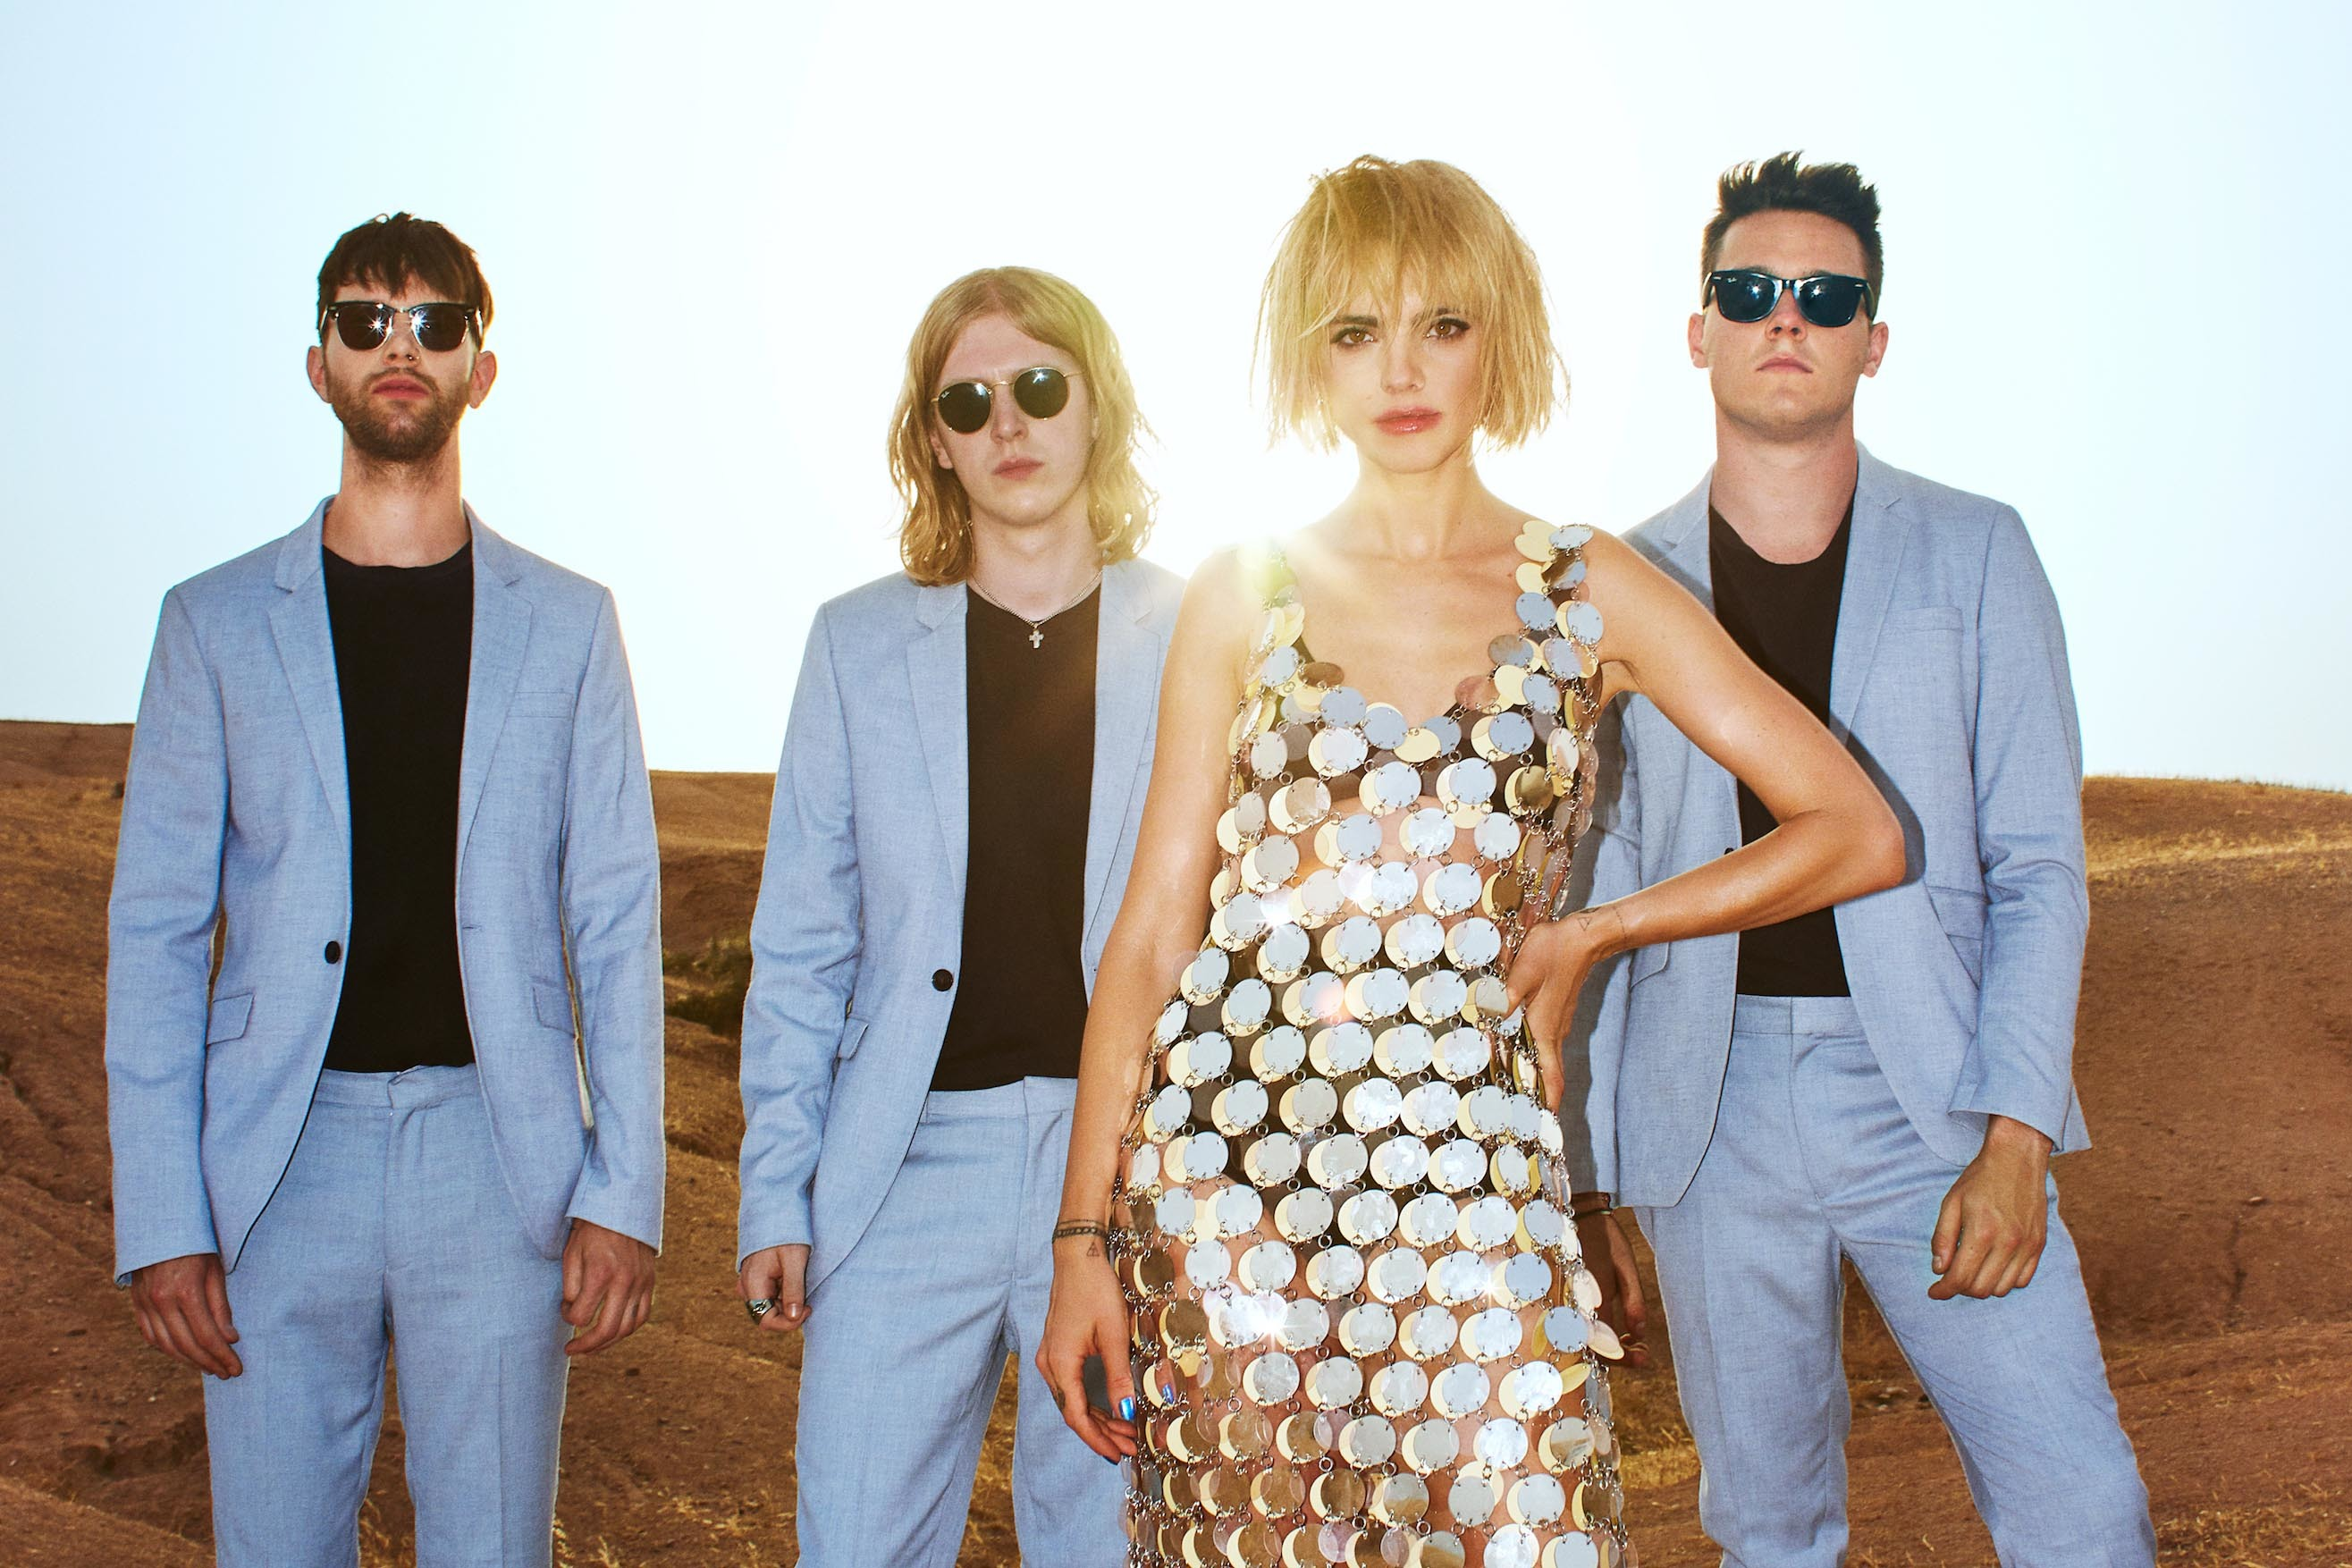 Anteros talk us through their debut album, track by track